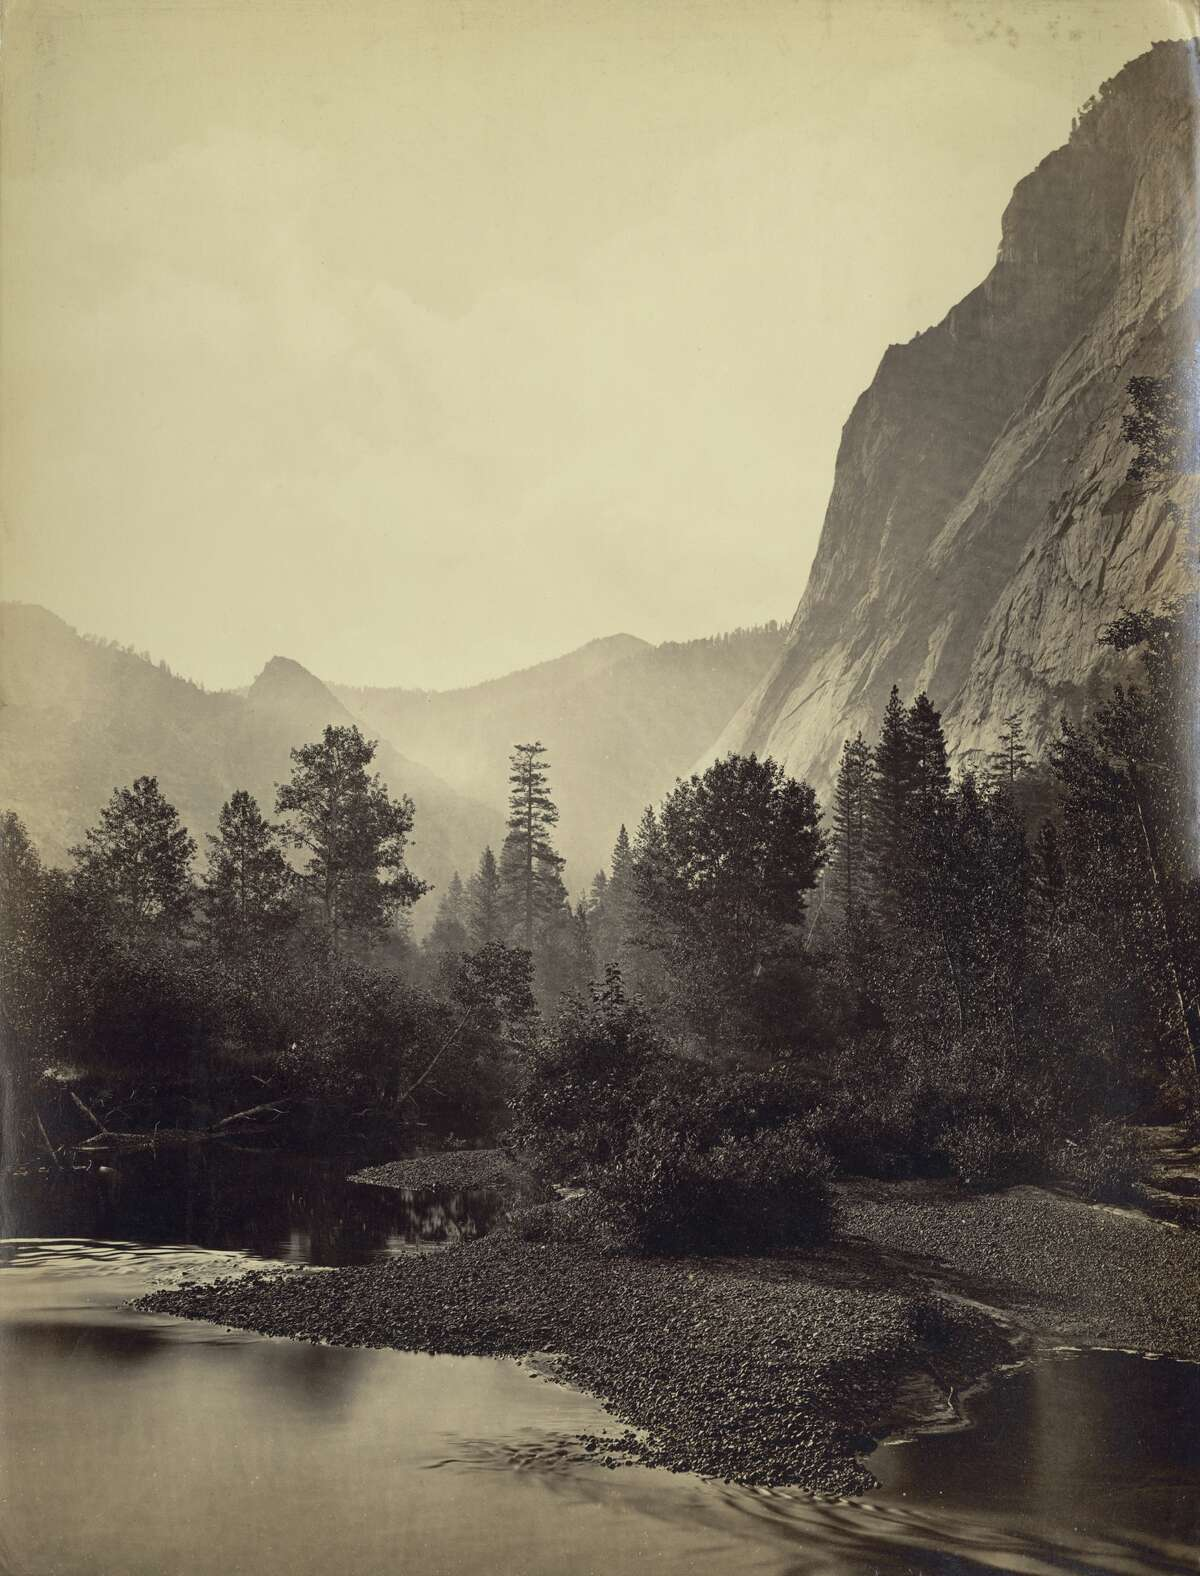 Mount Starr King (in the distance) and Glacier Point in Yosemite Valley, circa 1865.